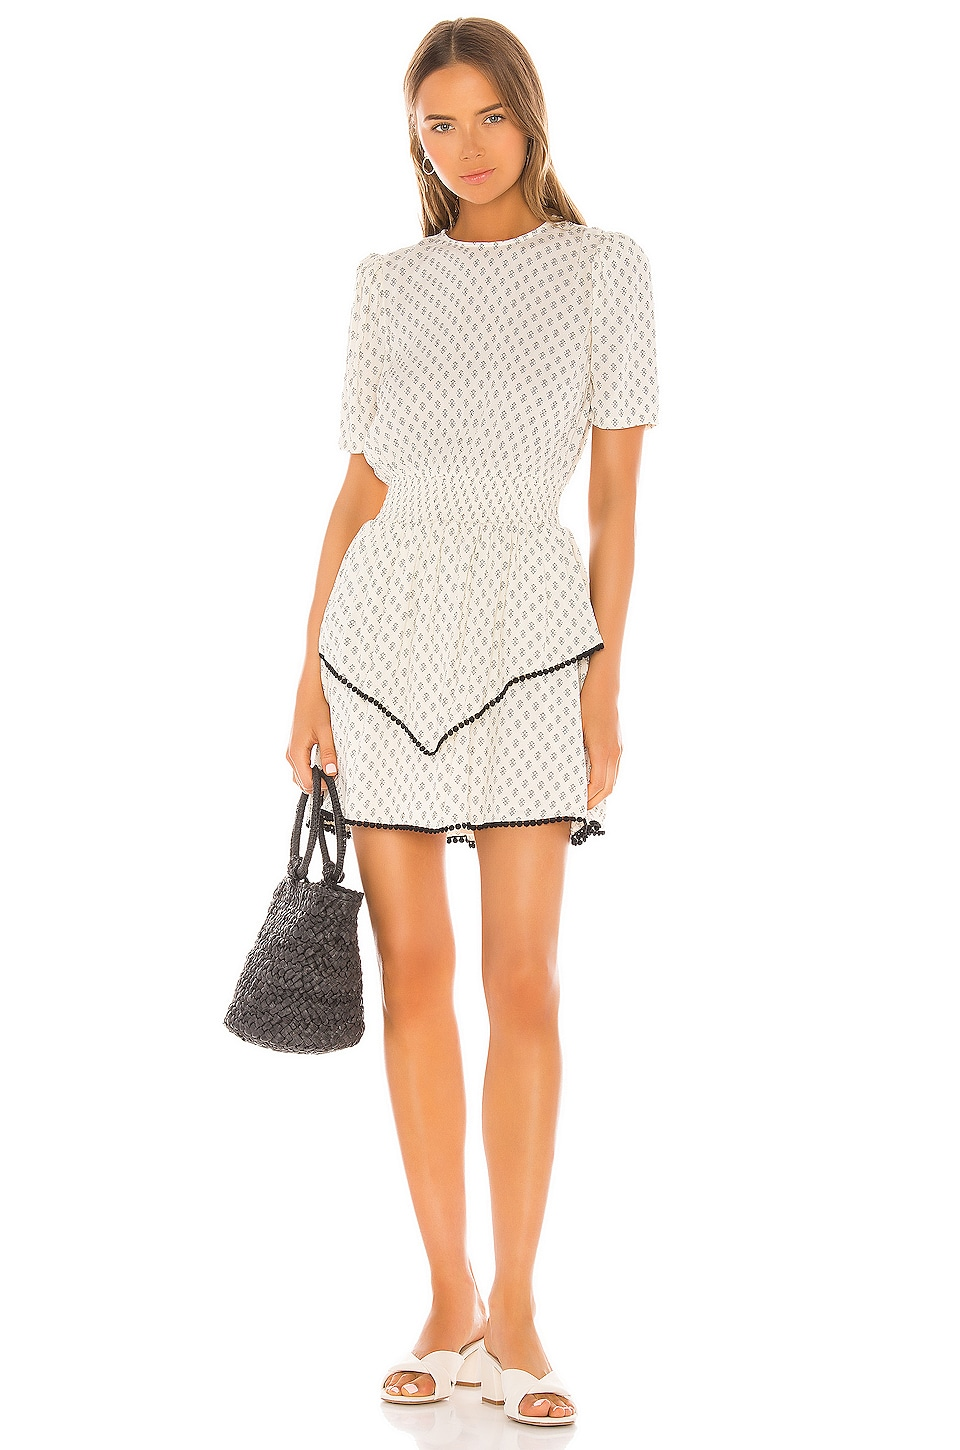 Tularosa Carroll Dress in Cream Tile